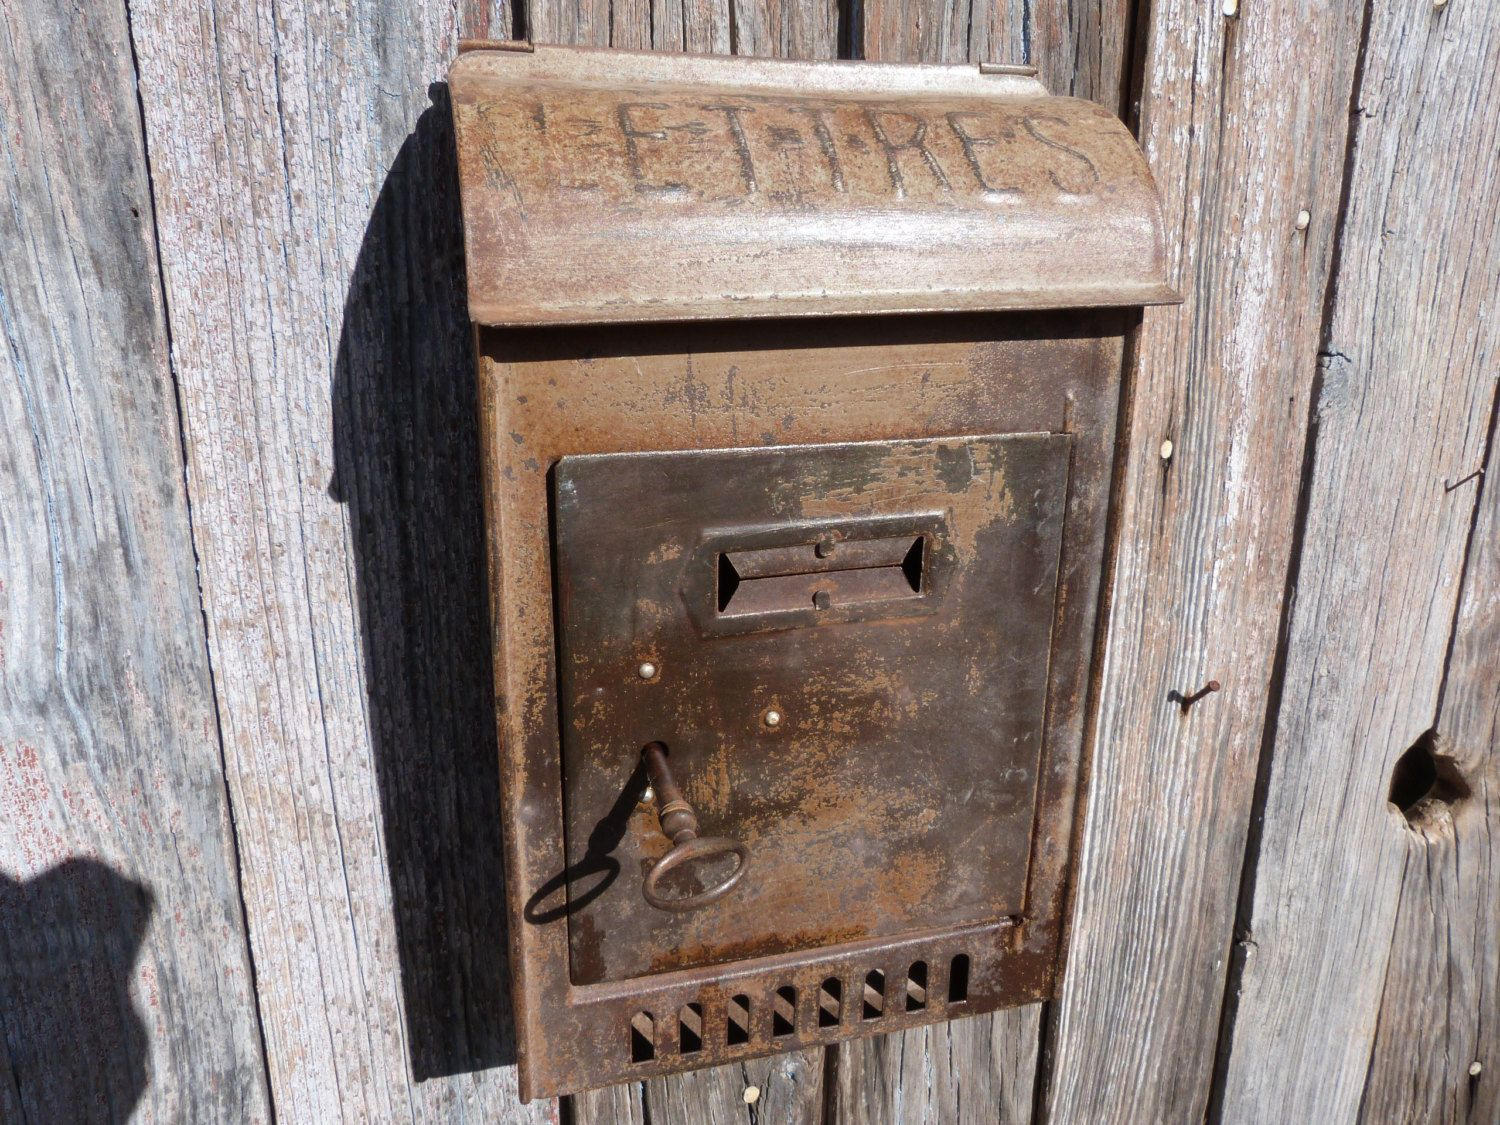 Antique French Post Office Mailbox Post Box, Antique Post Office Box W Key,  Metal Mailbox Letter Box, Mail Box, Rare Collectible